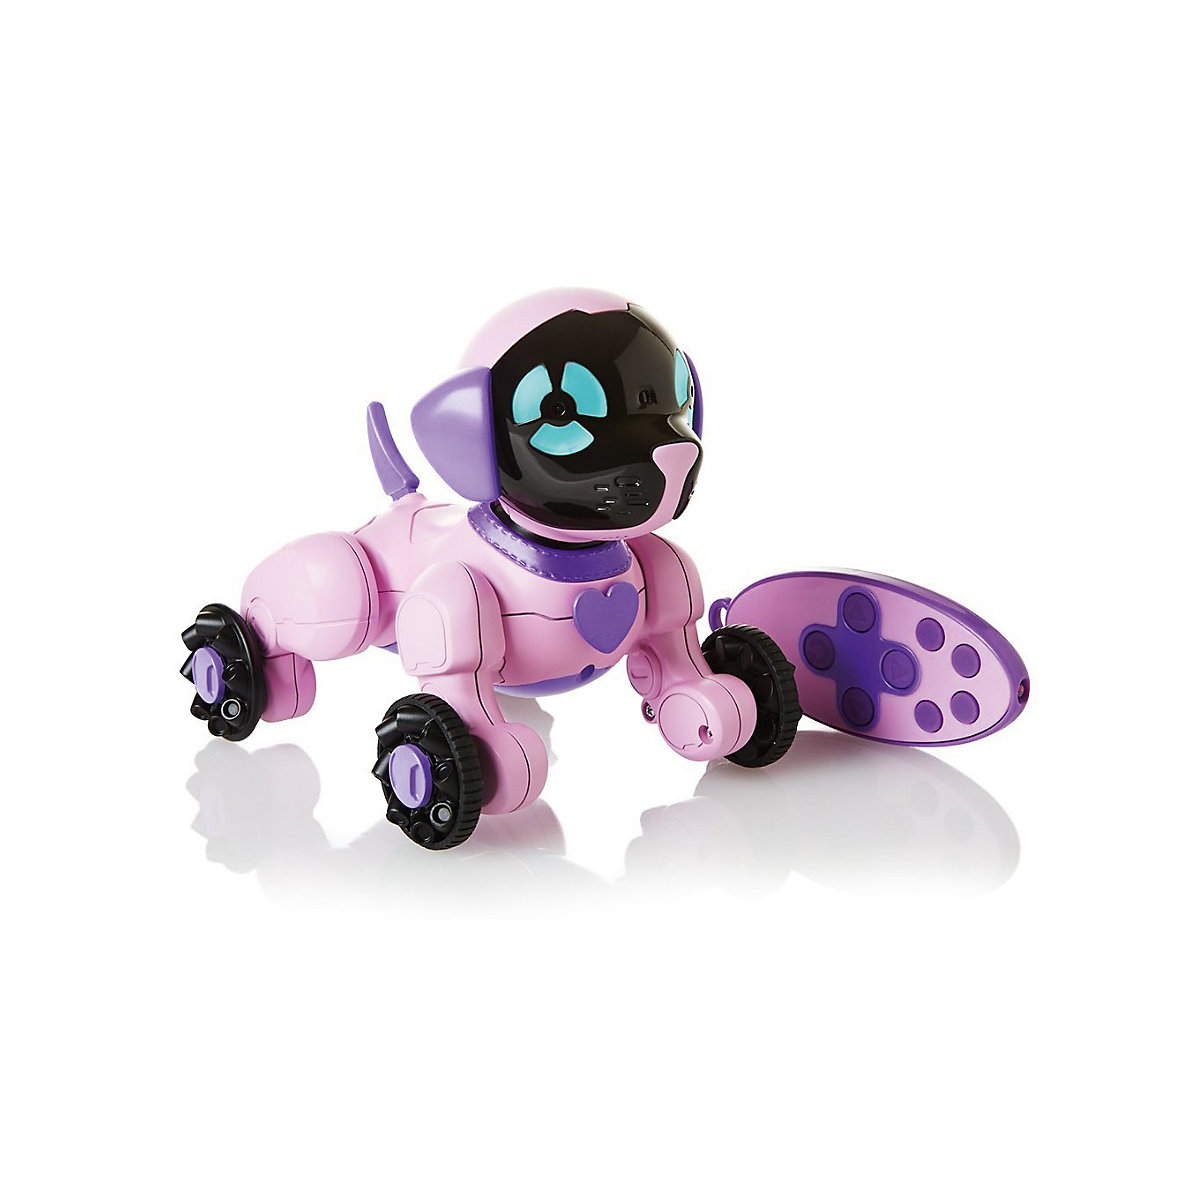 Electronic Pets WowWee 7314002 Tamagochi Robot Toys Interactive Dog Animals Kids MTpromo